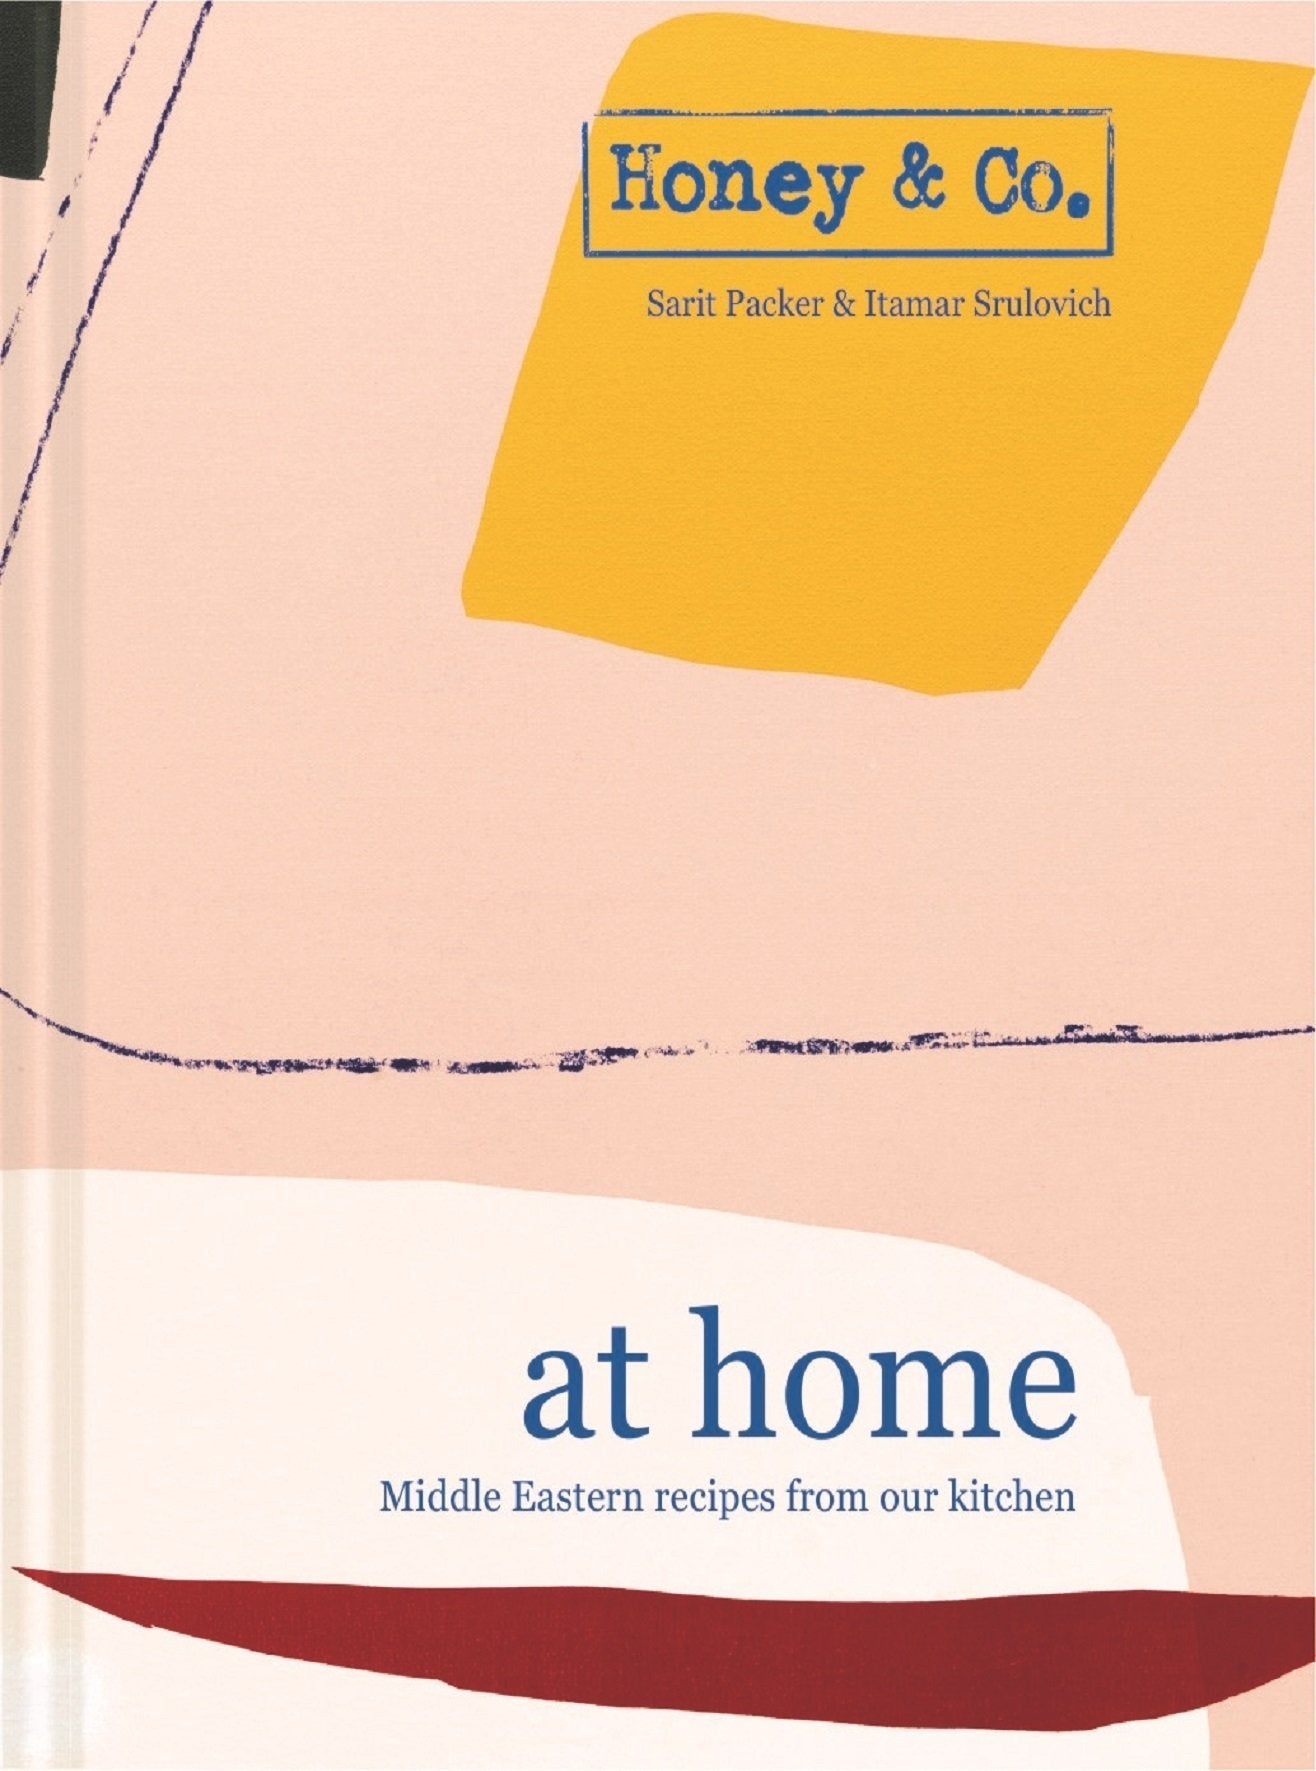 Honey & Co: At Home - Middle Eastern recipes from our kitchen (signed copy)